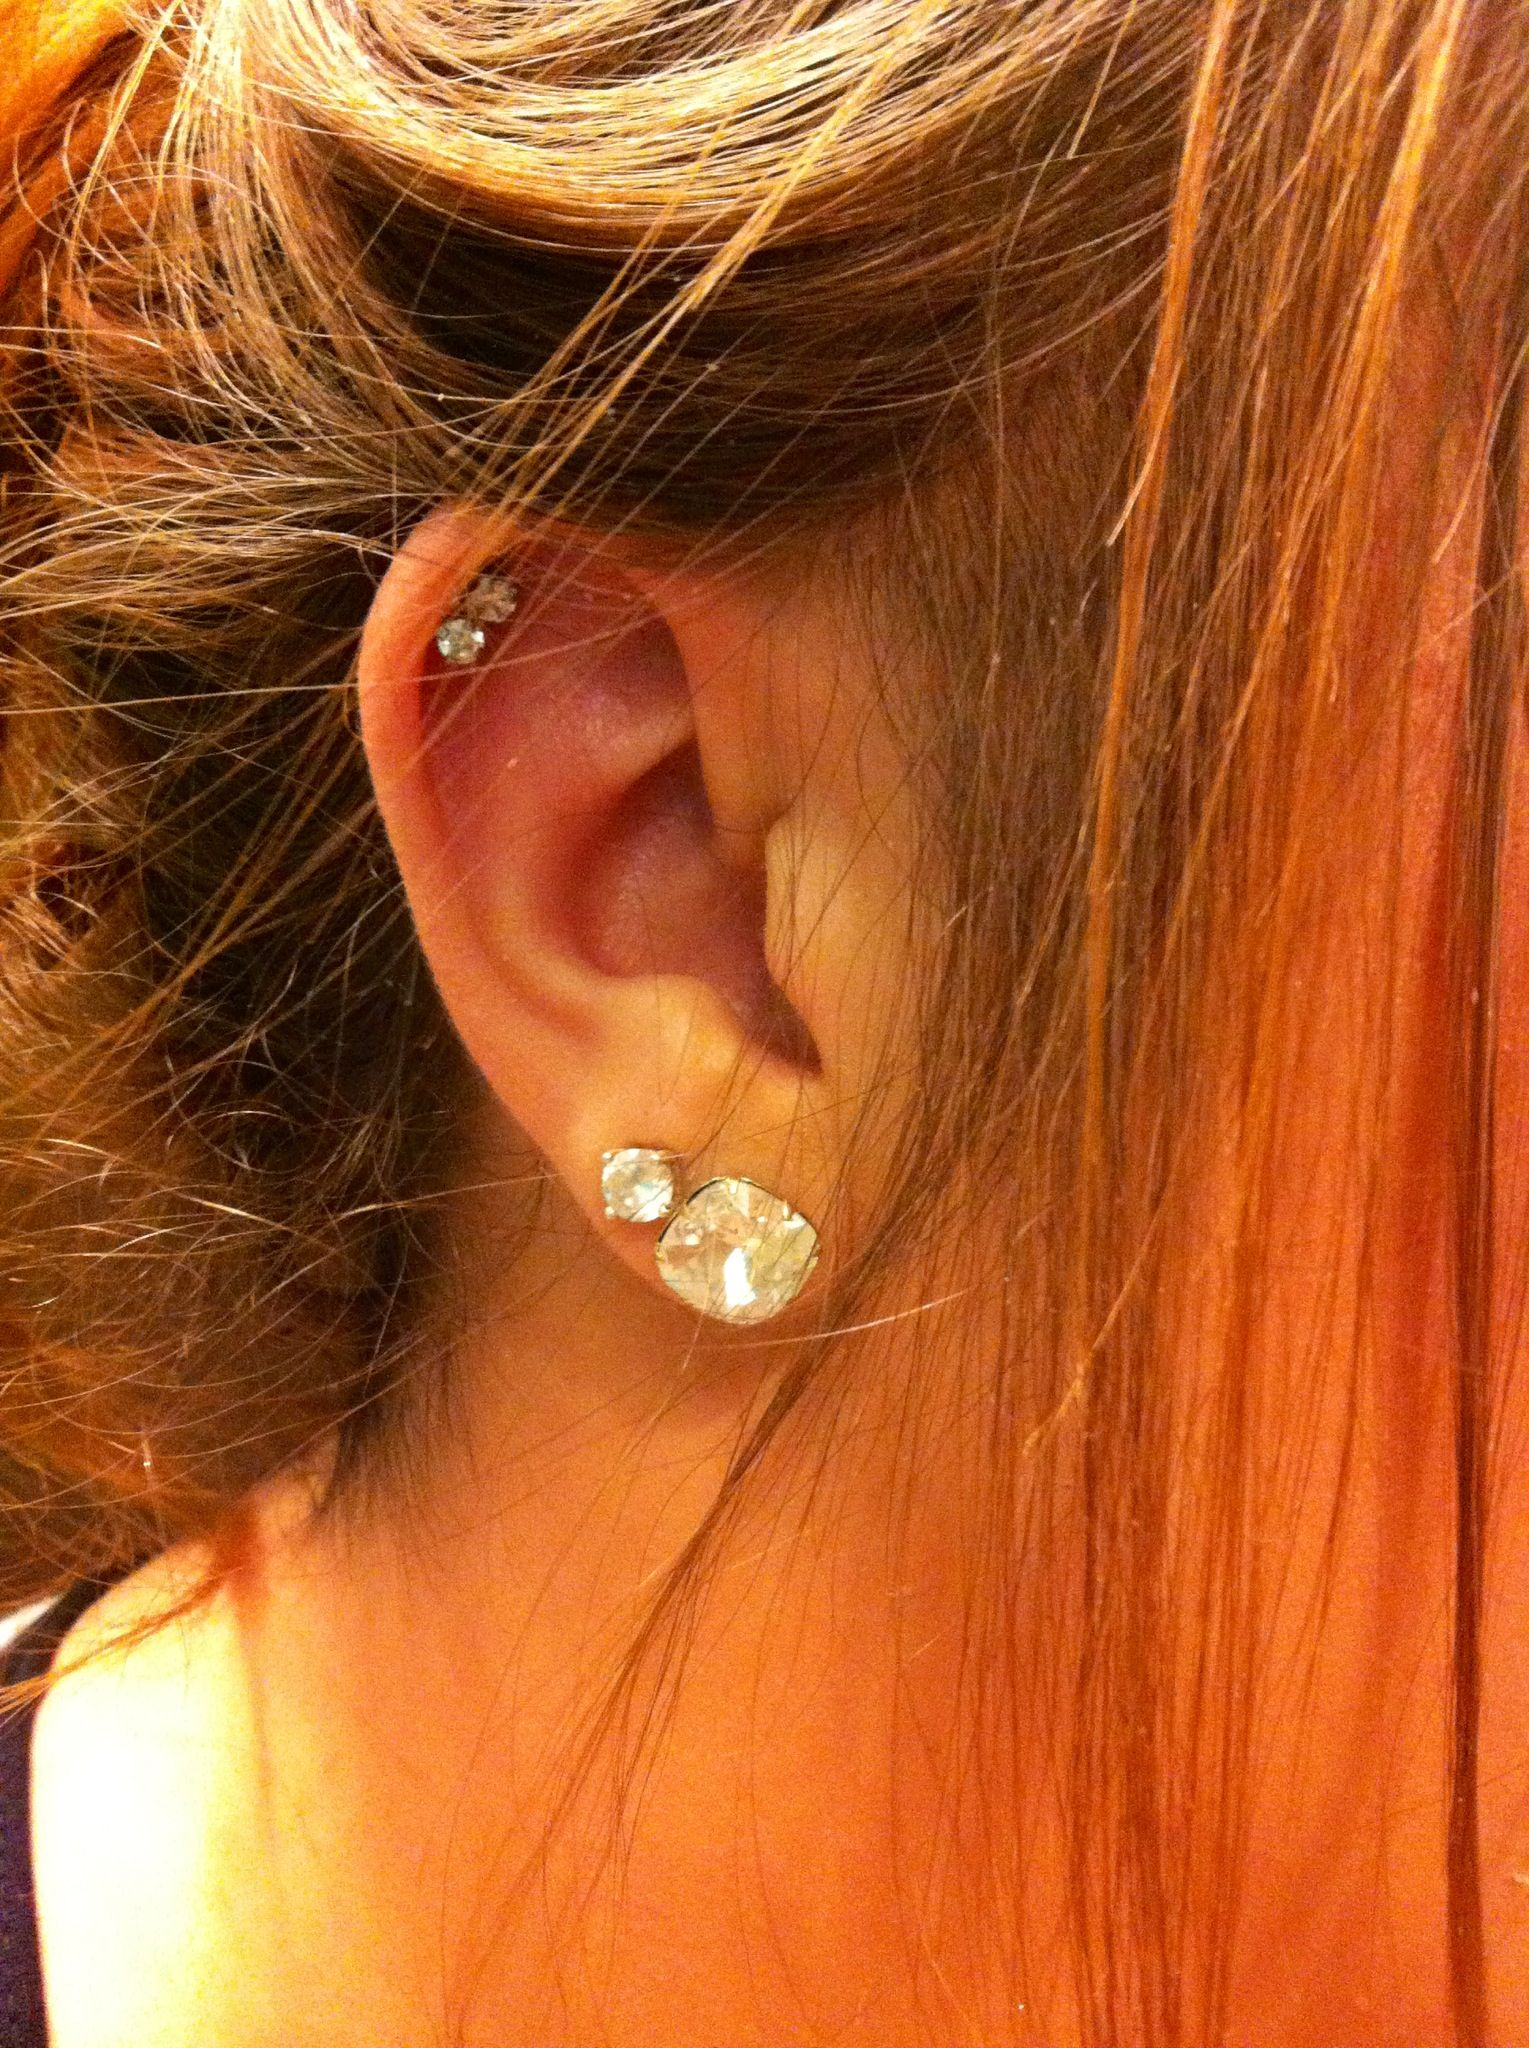 Coach Earrings On The Bottom & Double Cartilage Piercing